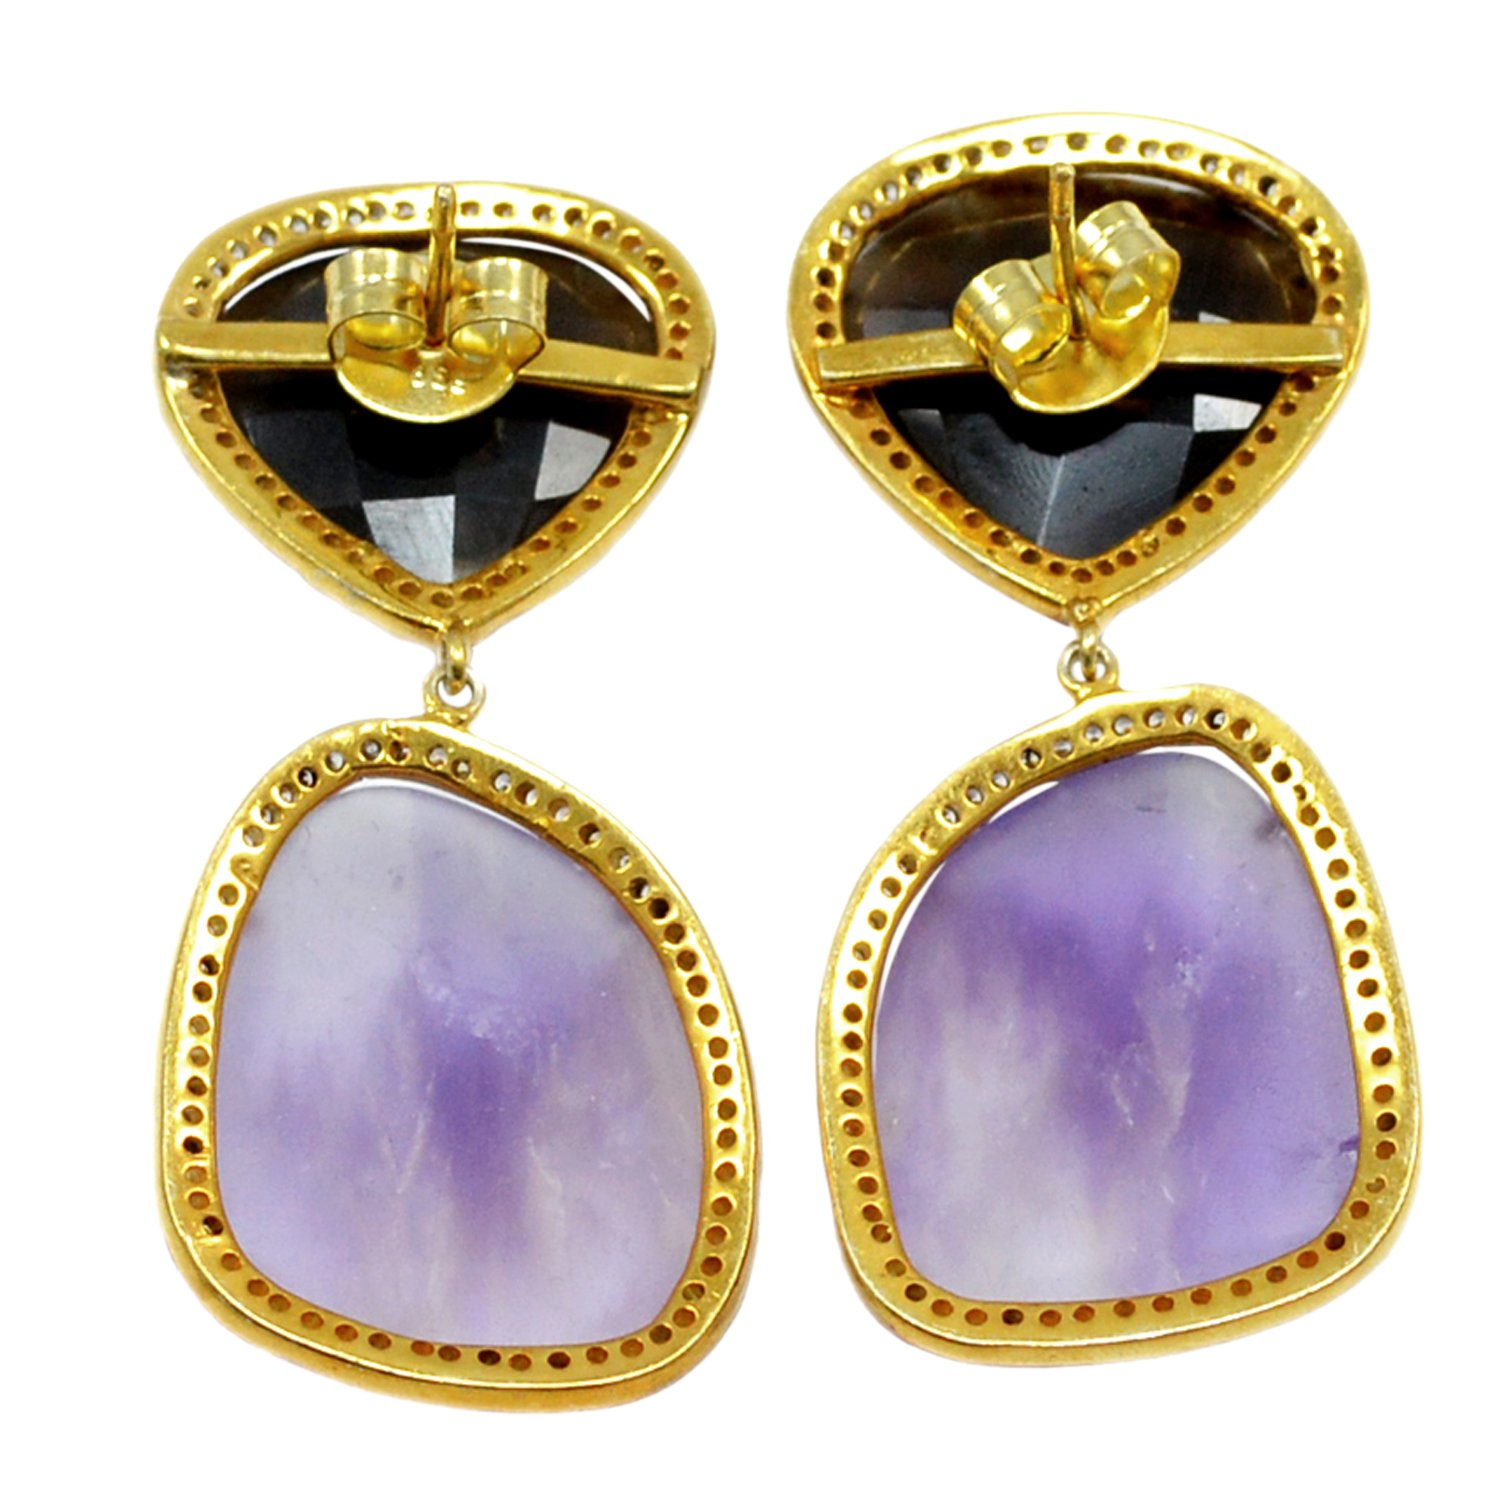 Handmade Jewelry Manufacturer 1 Pcs 18x20 25x20 Amethyst /& CZ Yellow Vermeil 925 Sterling Silver Prong Setting Earring Jaipur Rajasthan India